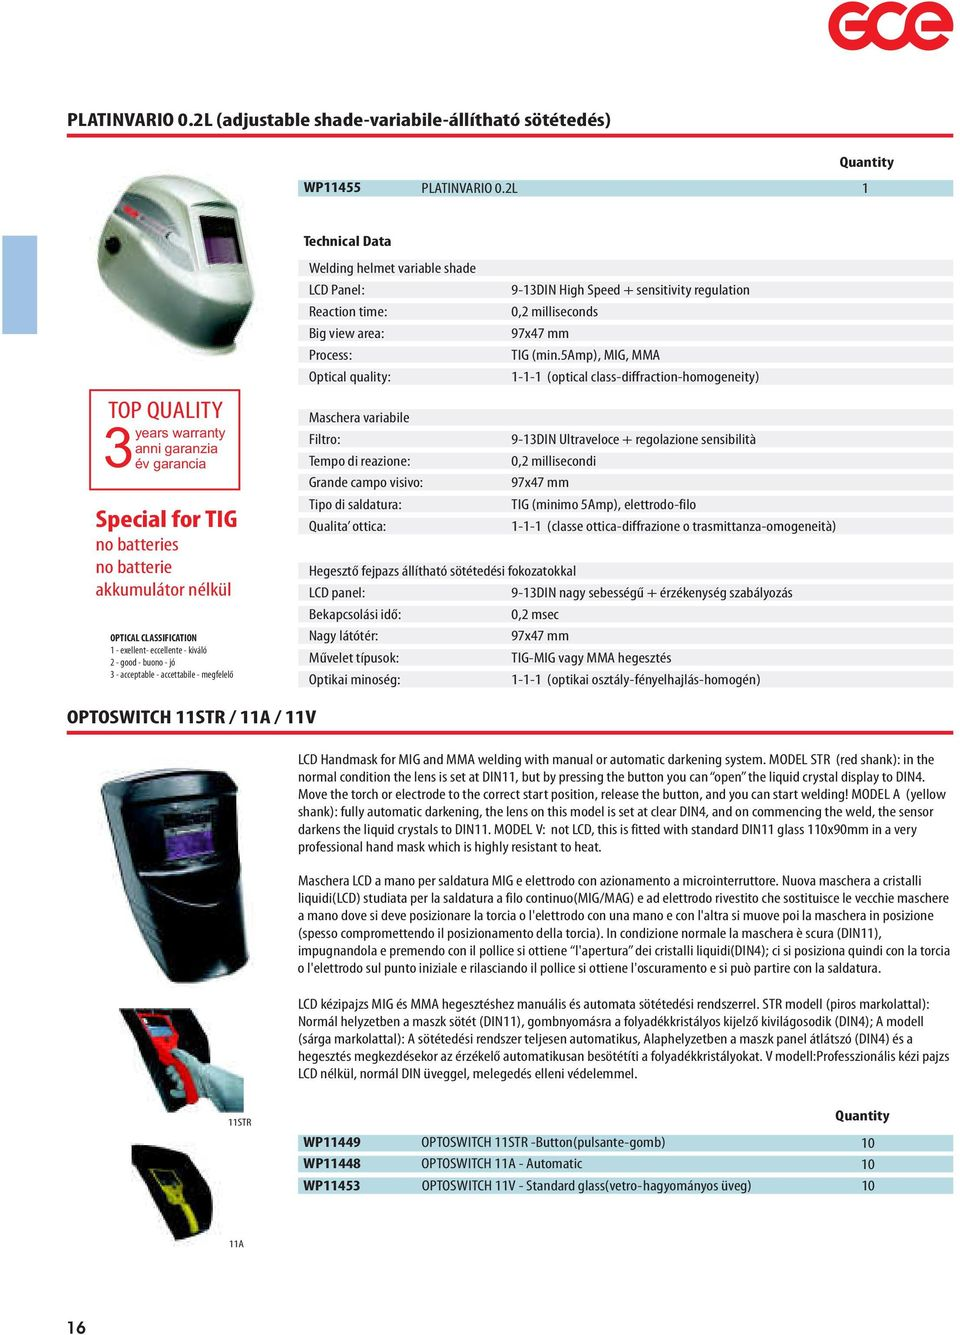 acceptable - accettabile - megfelelõ Technical Data Welding helmet variable shade LCD Panel: Reaction time: Big view area: Process: Optical quality: Maschera variabile Filtro: Tempo di reazione: